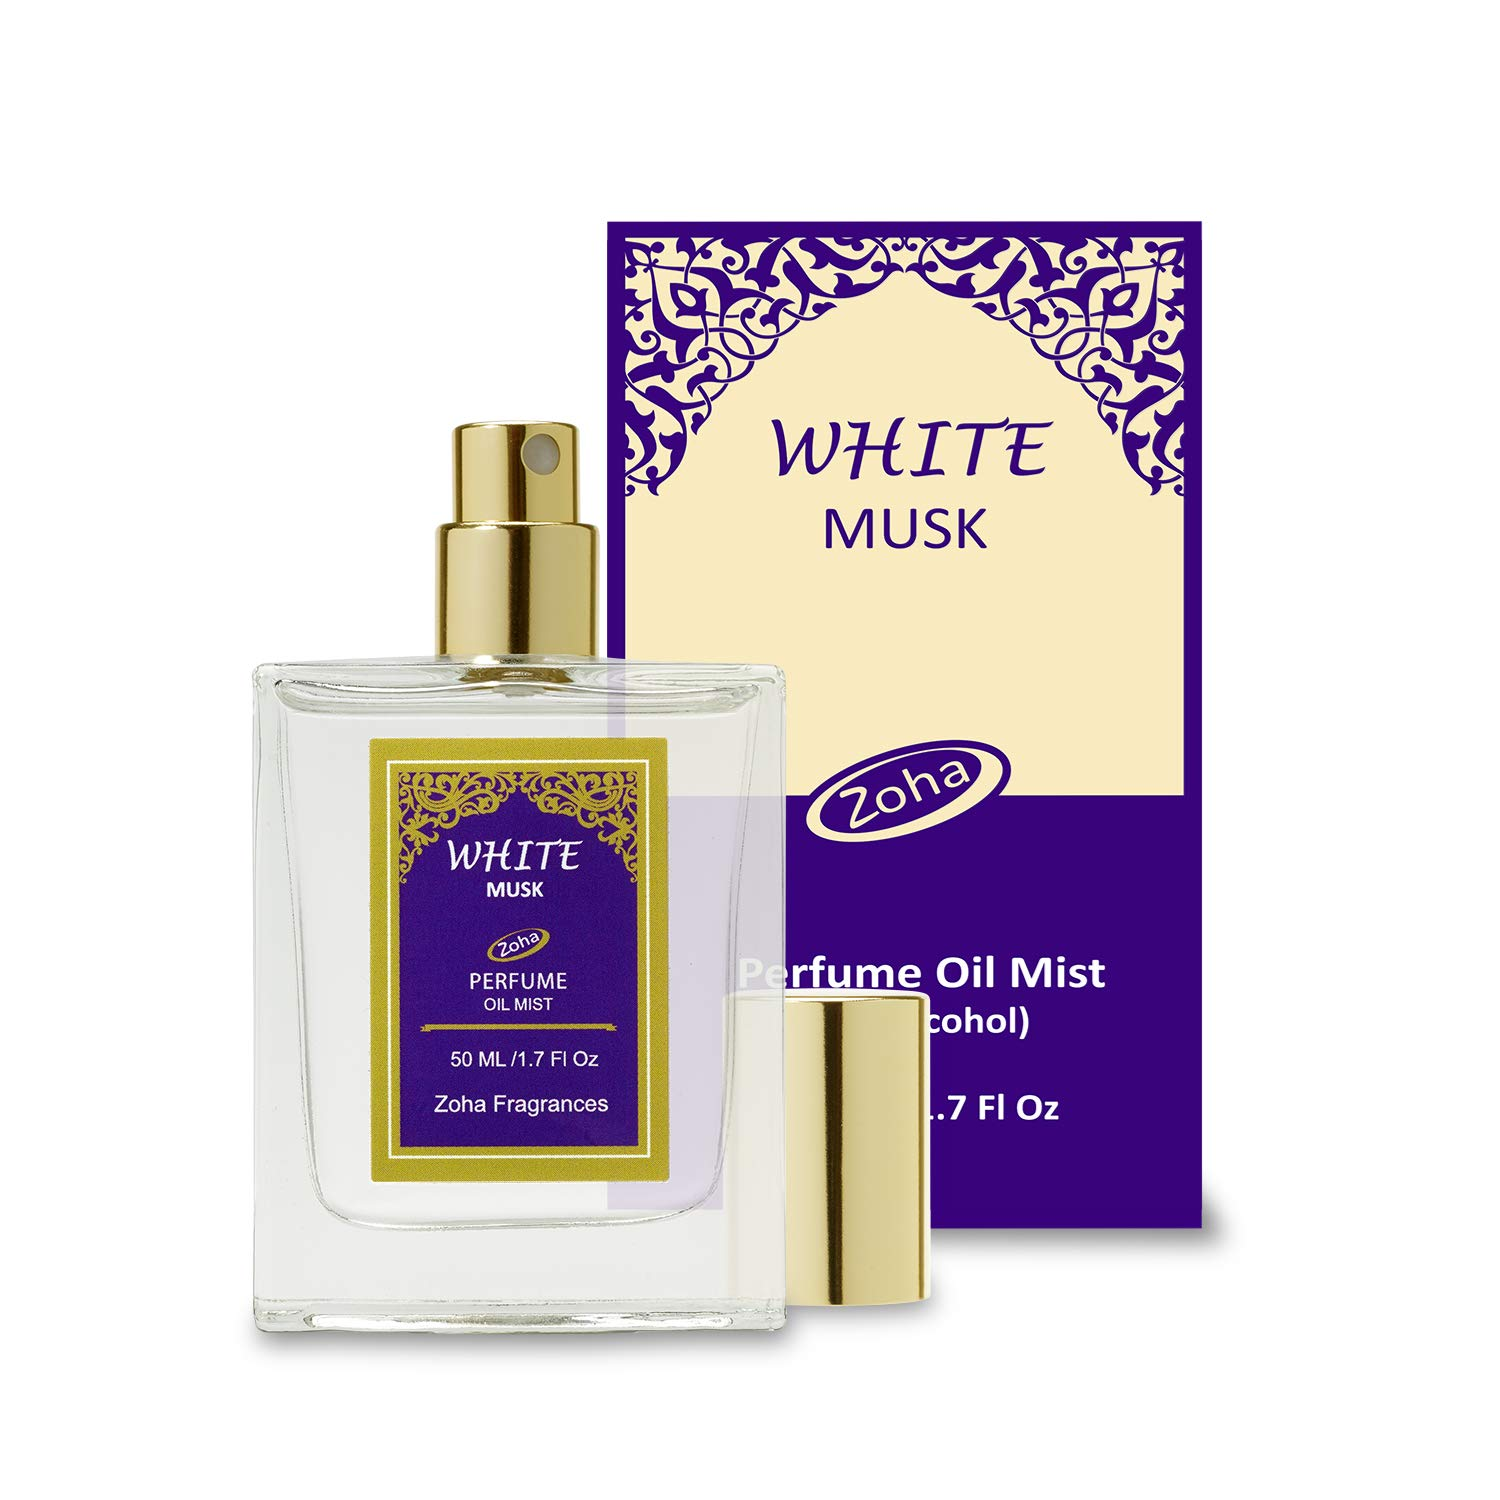 White Musk Perfume Oil Mist (No Alcohol) White Musk Fragrance Oil - Essential Oils and Perfumes for Women and Men by Zoha Fragrances, 50 ml / 1.7 fl Oz by Zoha